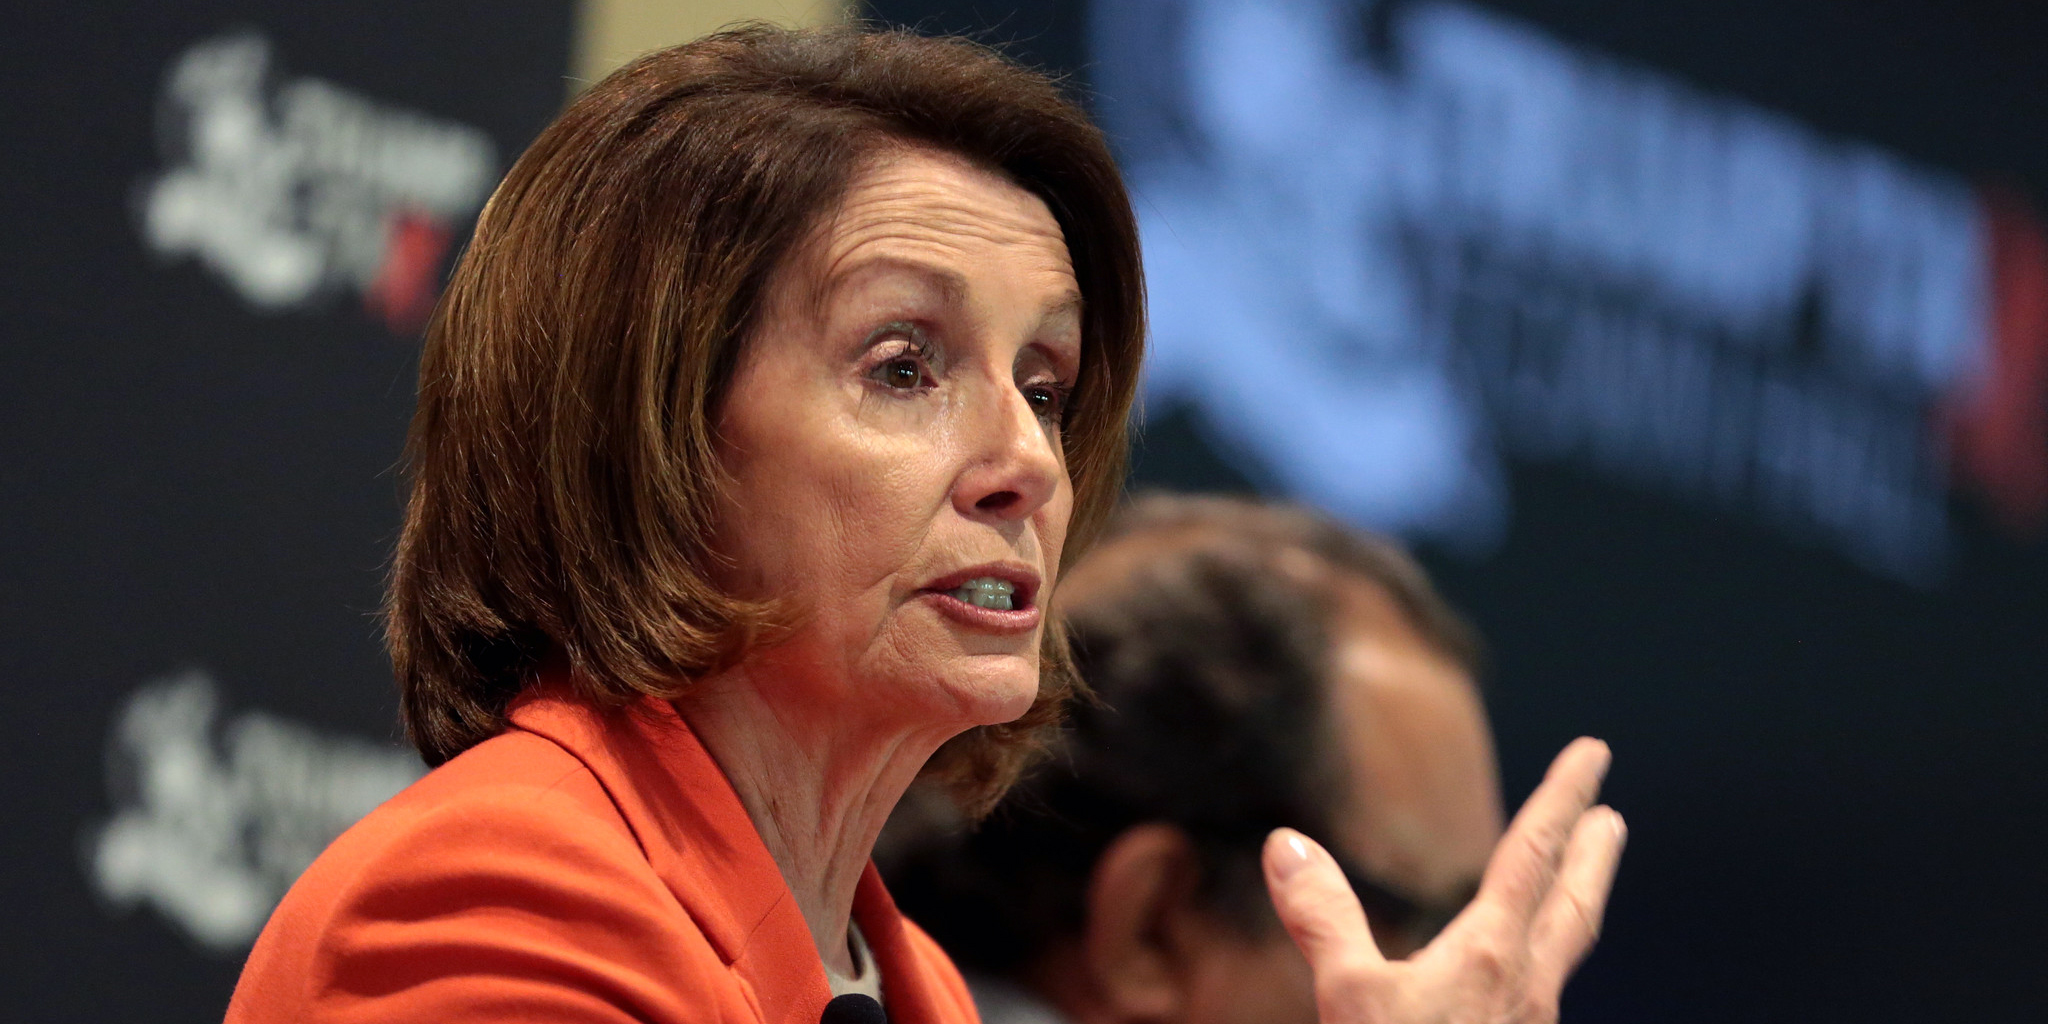 Nancy Pelosi speaking and gesturing with her hand at a town hall